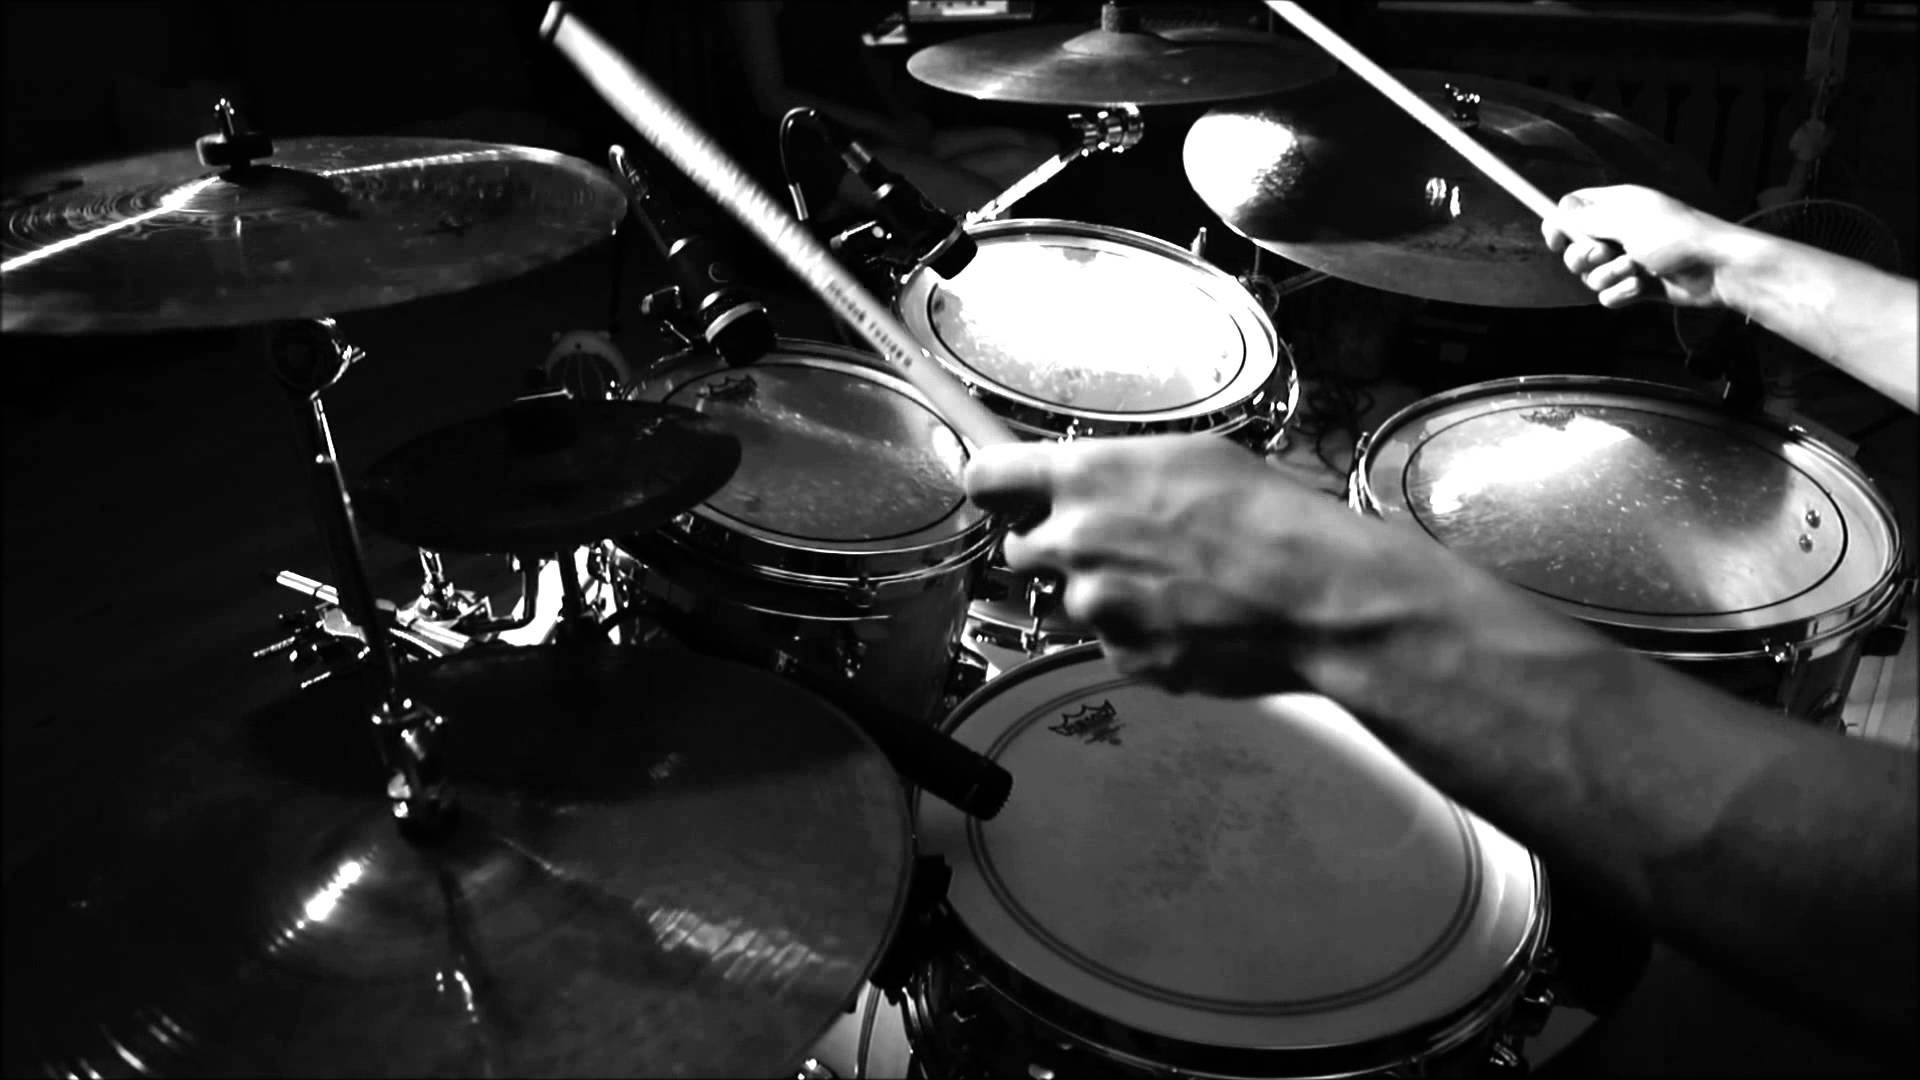 1920x1080 ... Drum Set Wallpapers - Wallpaper Cave | Epic Car Wallpapers .